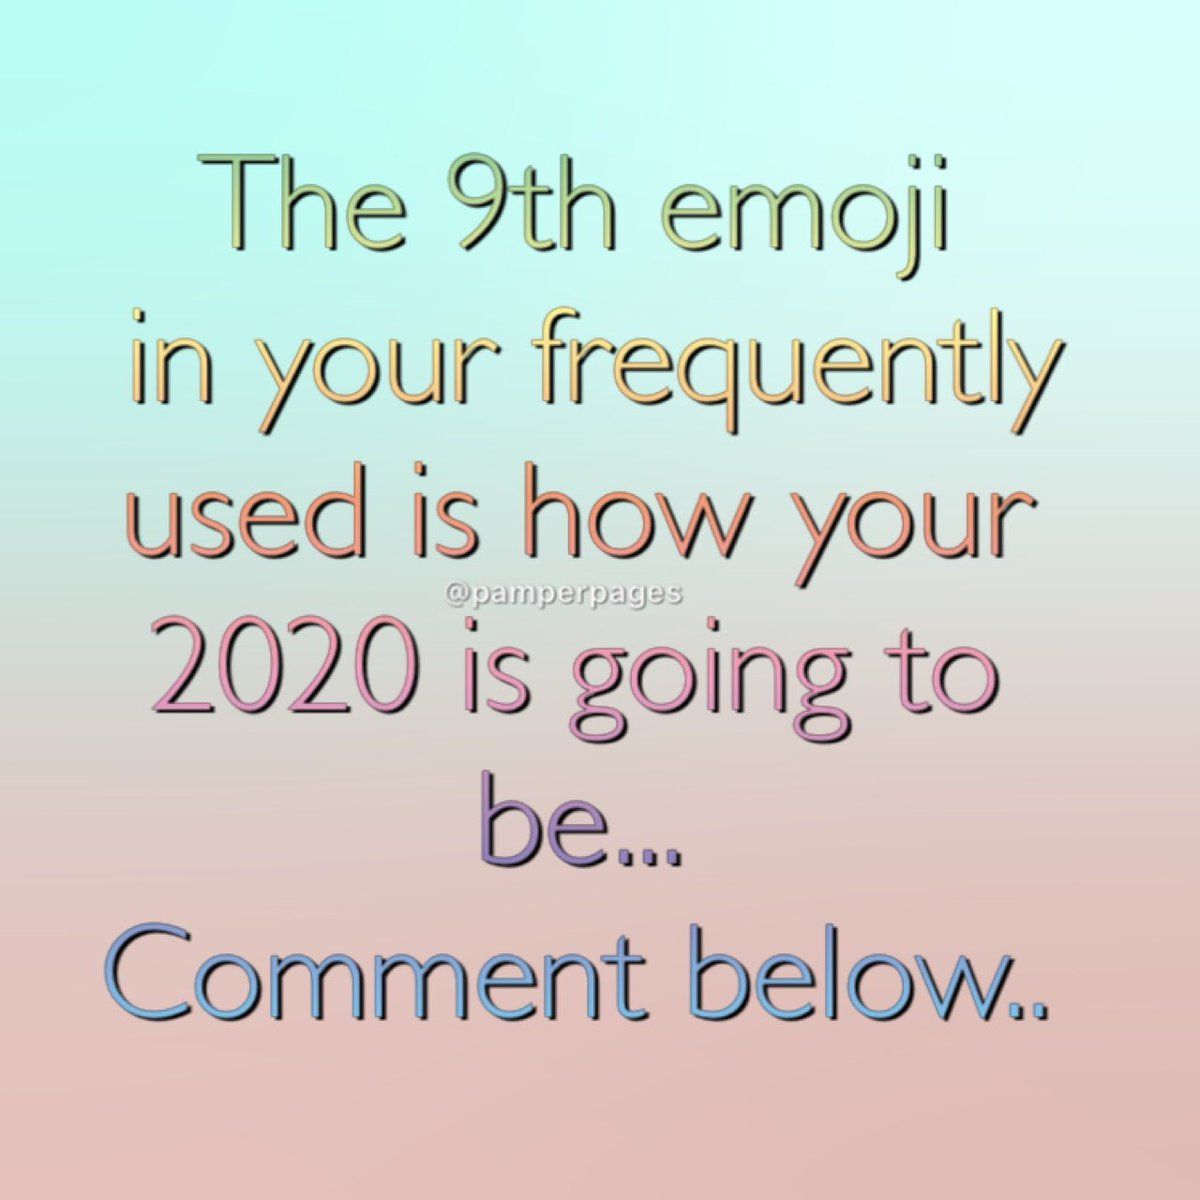 The 9th emoji in your frequently used is how your 2020 is going to be... This is ours ..... What's yours.... Comment below  #bitoffun #lol #laugh #laughing  #smile #haha #emoji #commentbelow #comment #comment4comment #joke #lmao #love #funnyquote<br>http://pic.twitter.com/nJb4zL9xRc